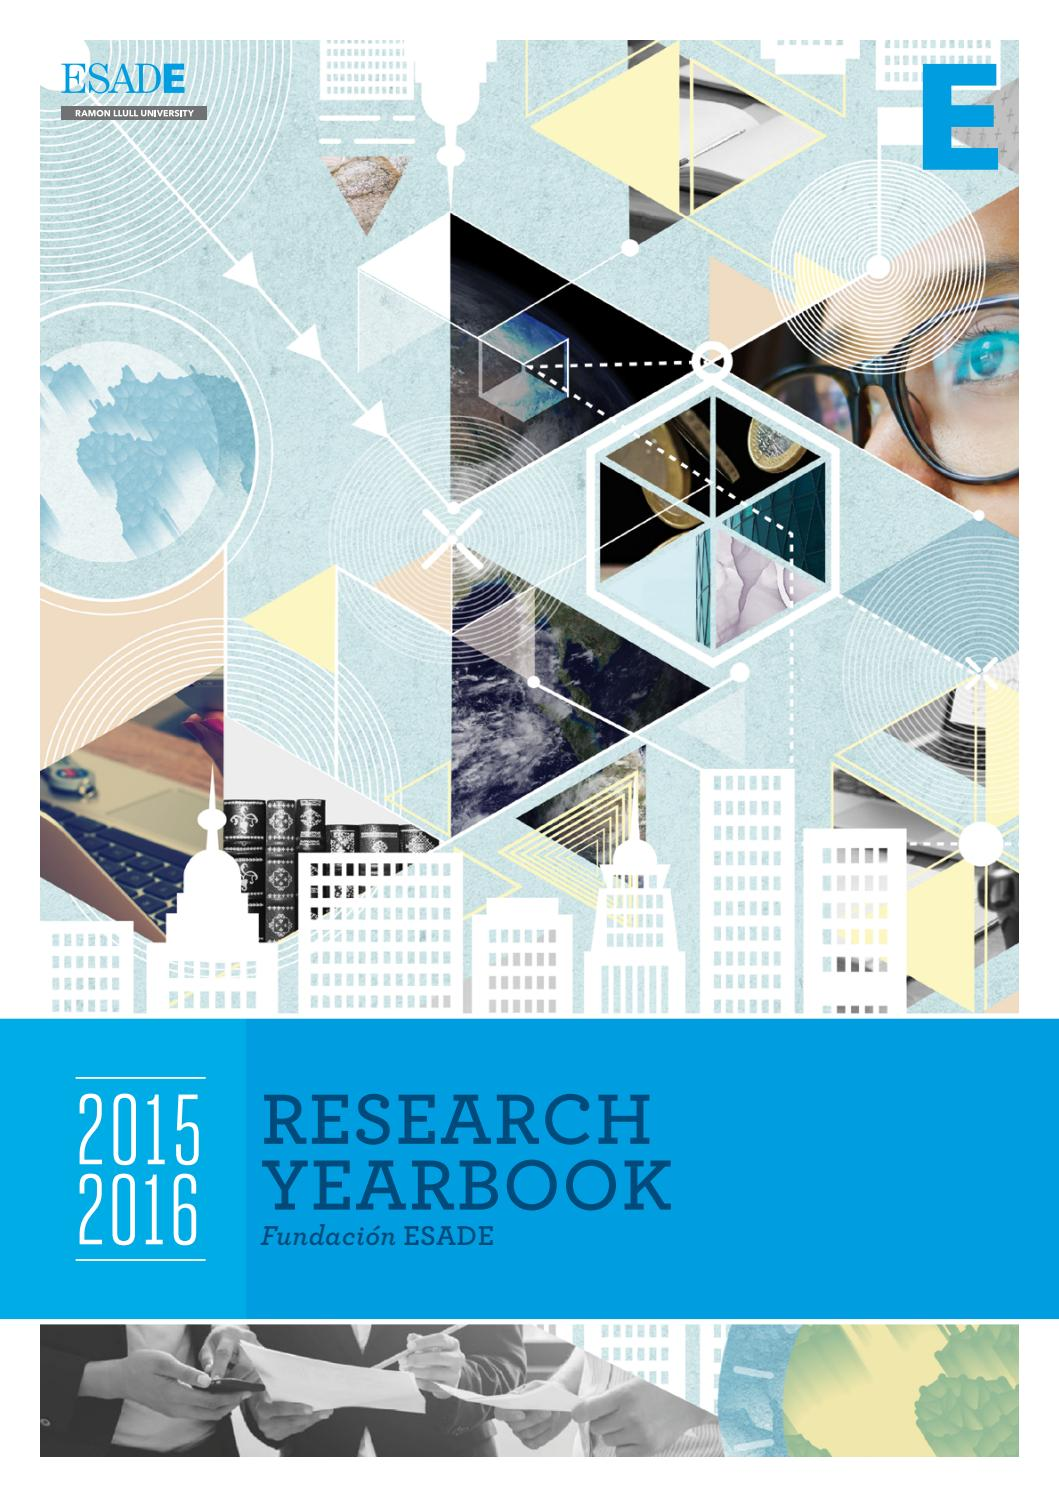 ESADE Research Yearbook 2015-16 by ESADE - issuu